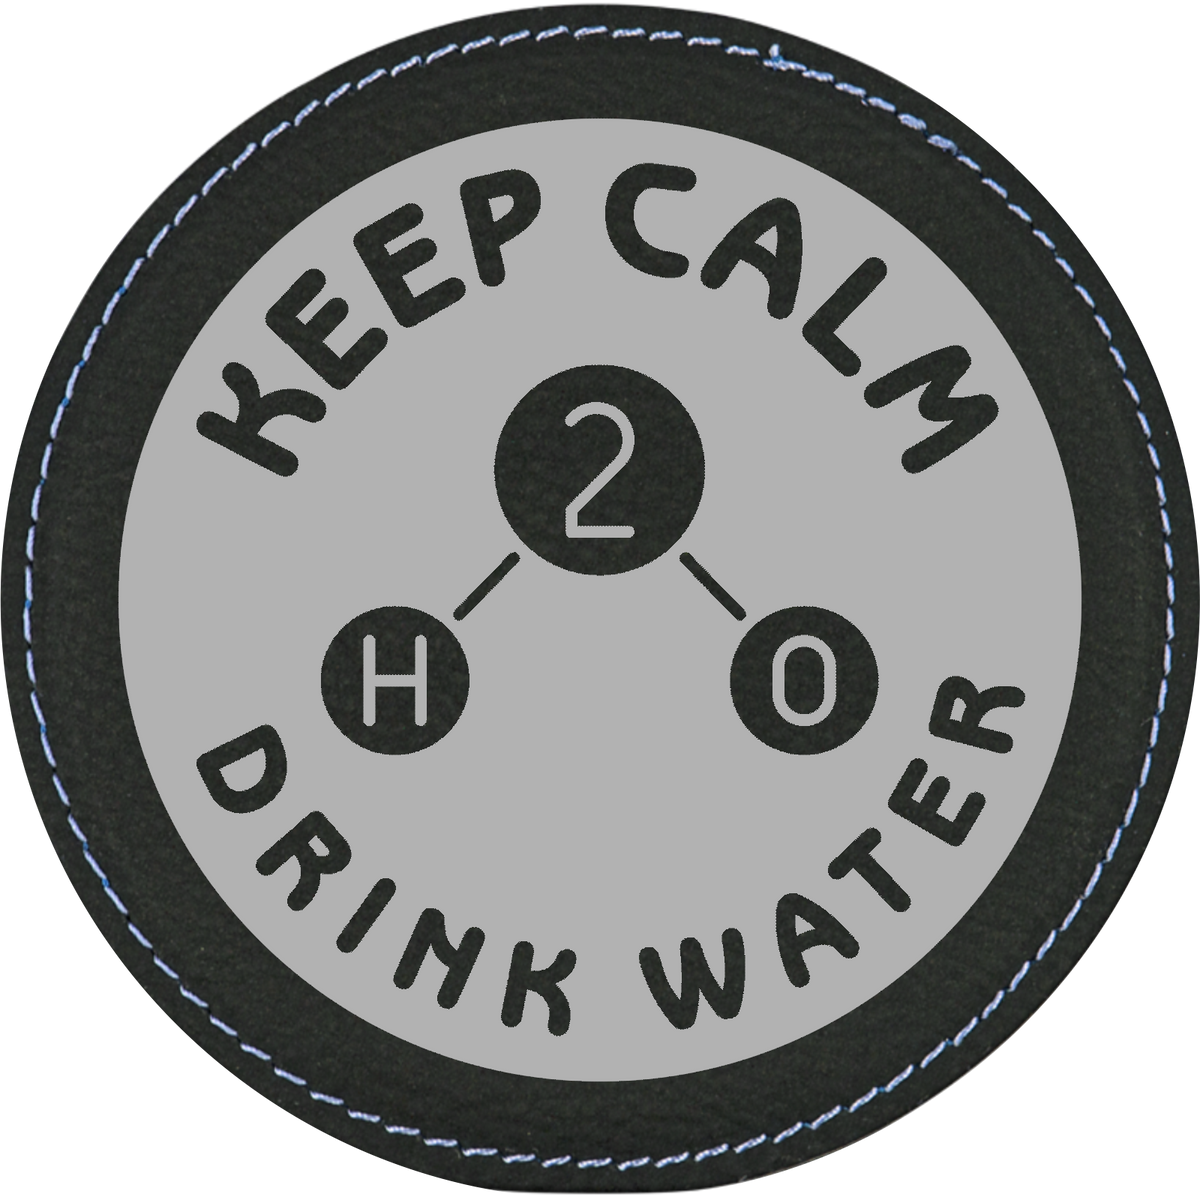 Keep Calm and Drink WATER - Leatherette Round Coasters (Set of 6)